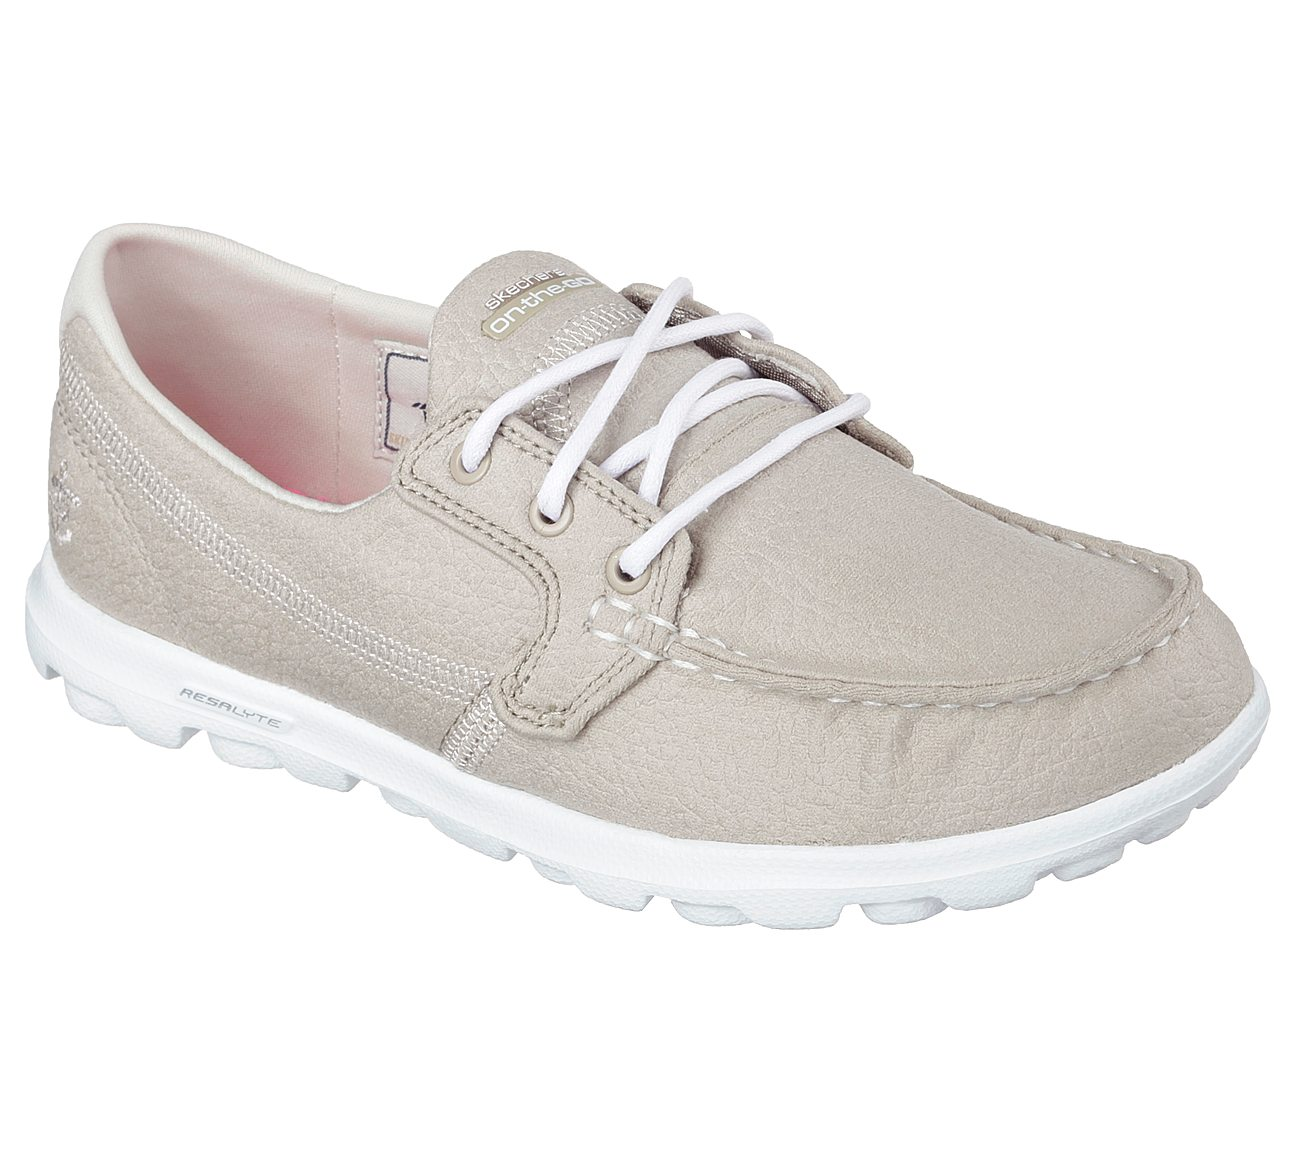 skechers boat shoes